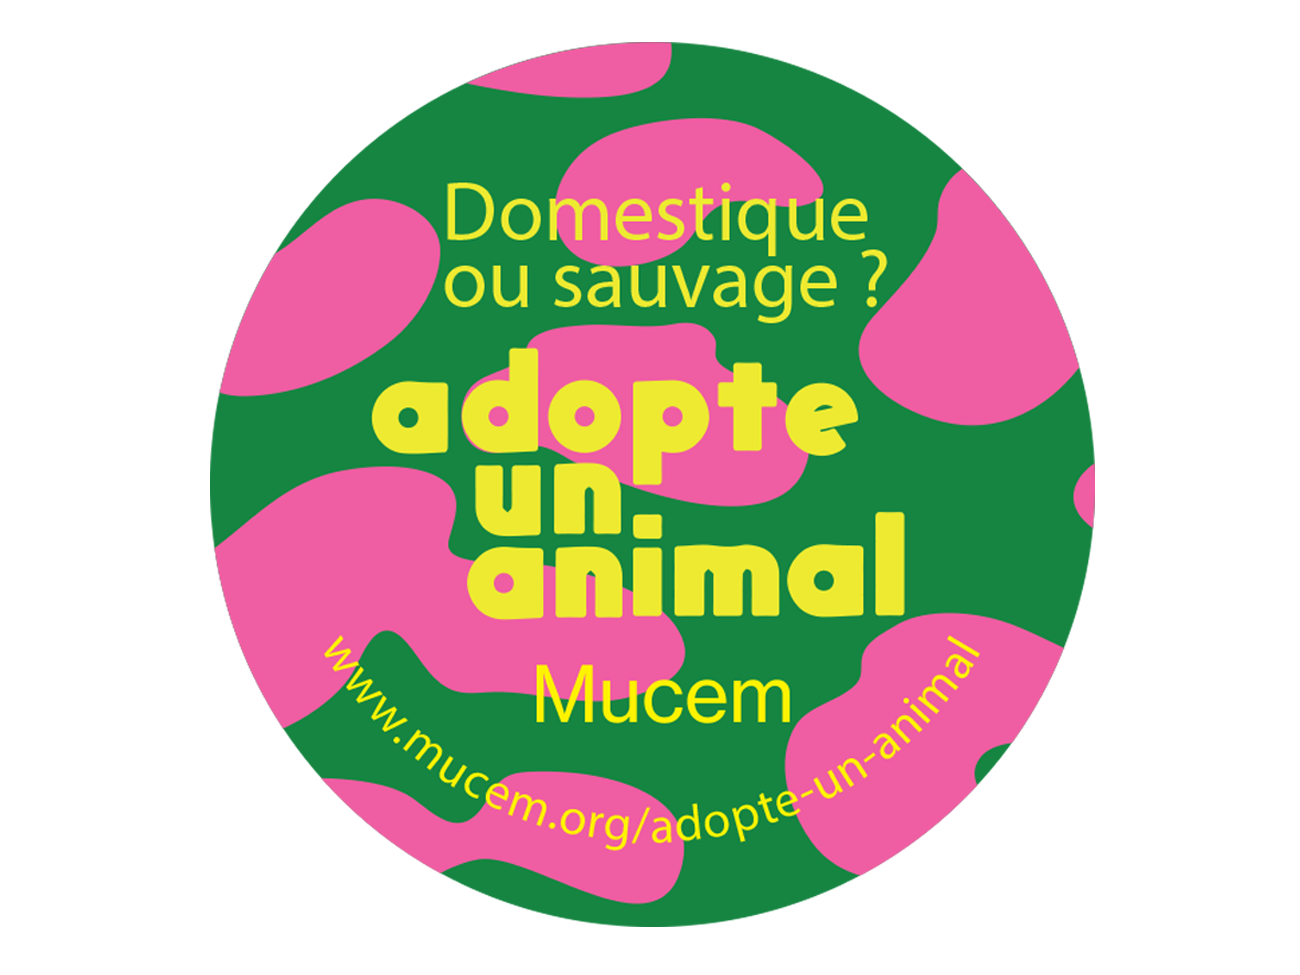 Adopte un animal, Mucem